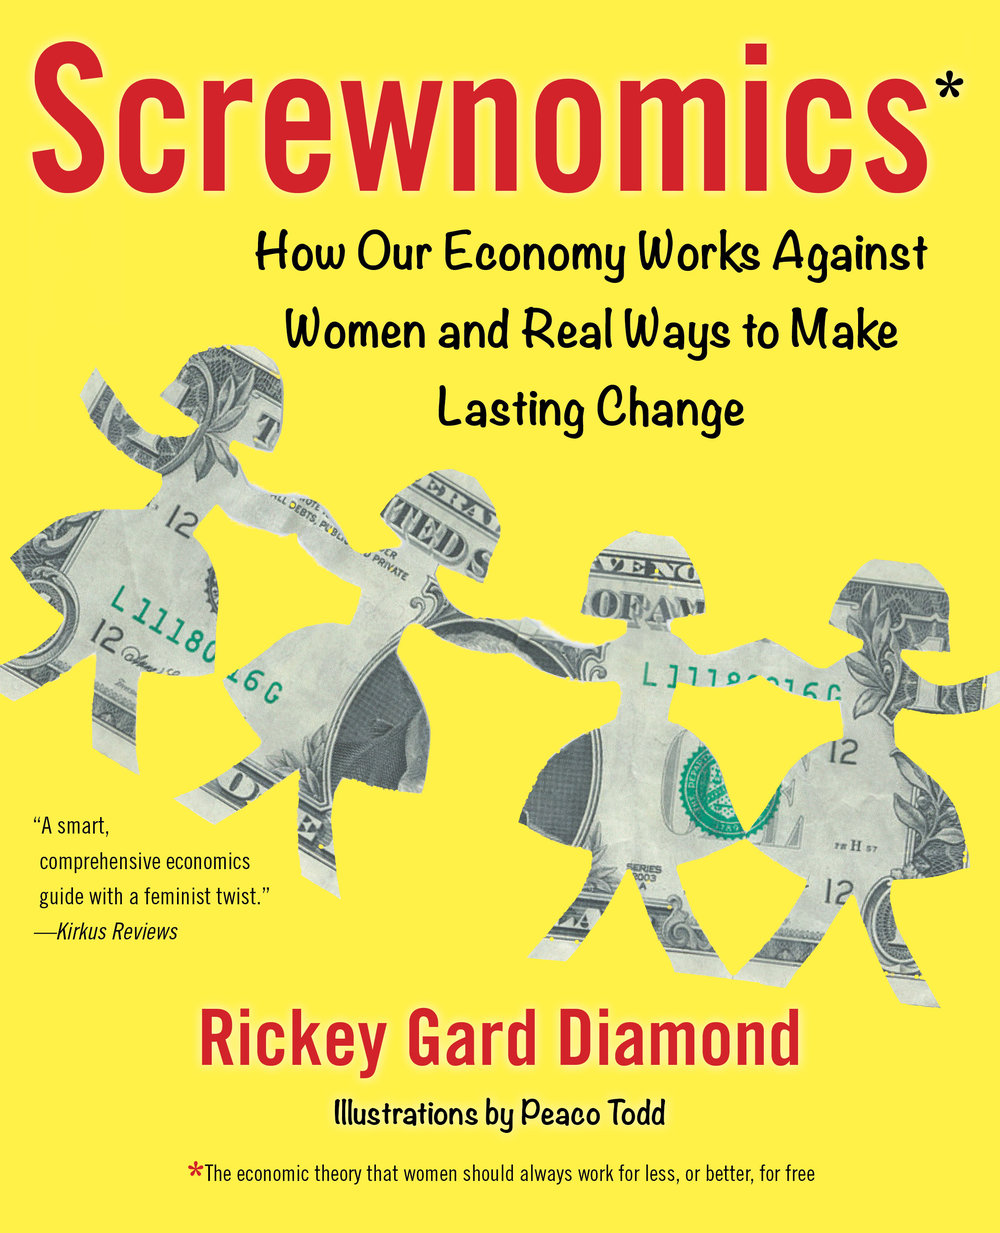 Screwnomics Cover 2.11.18.jpeg